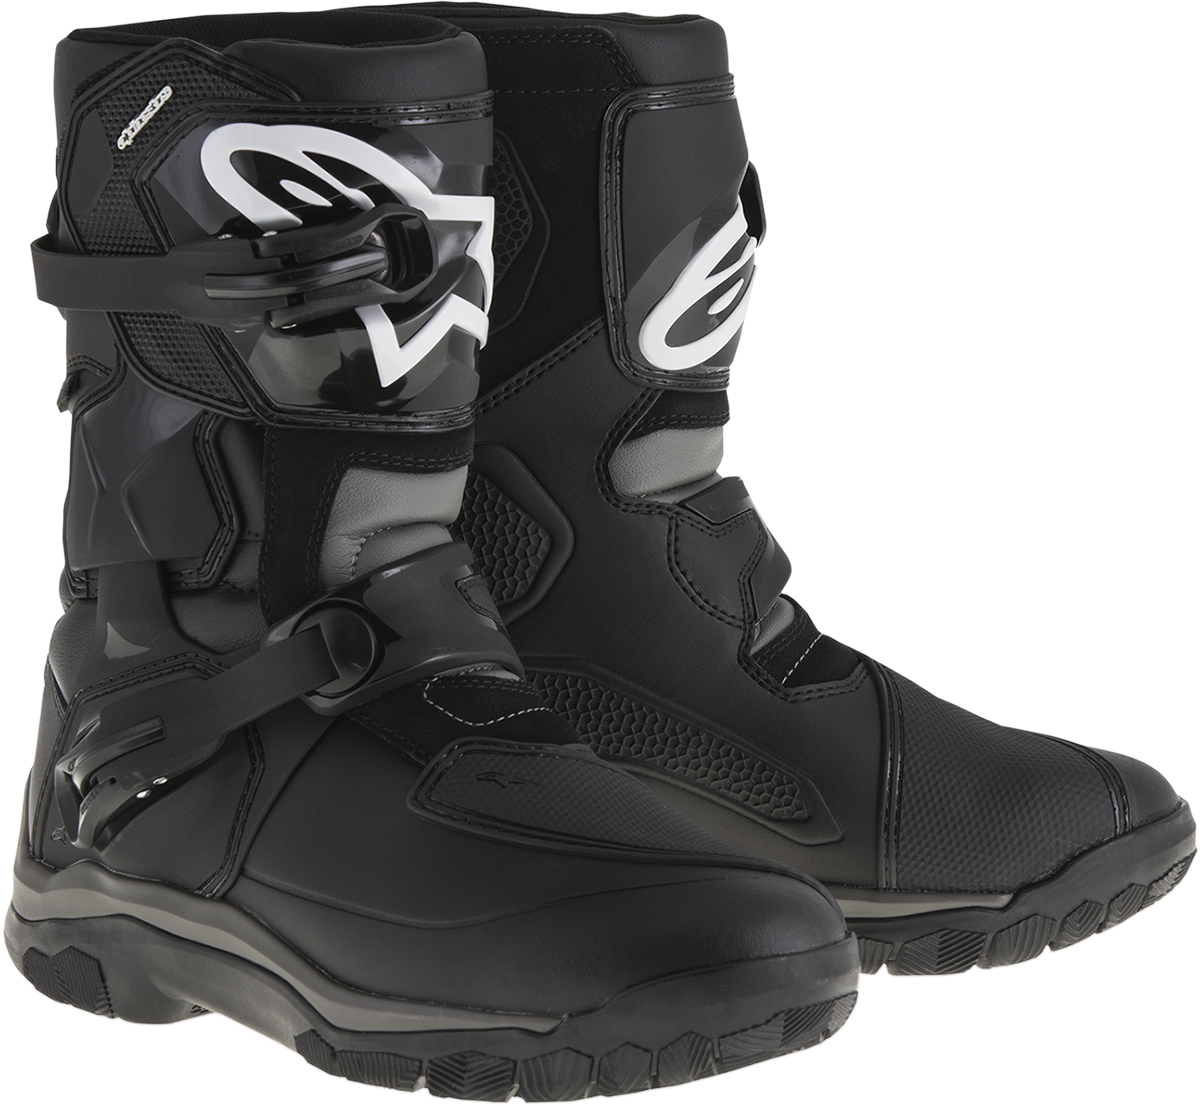 Alpinestars Mens Leather Belize Drystar Offroad Riding Dirt Bike Racing Boots